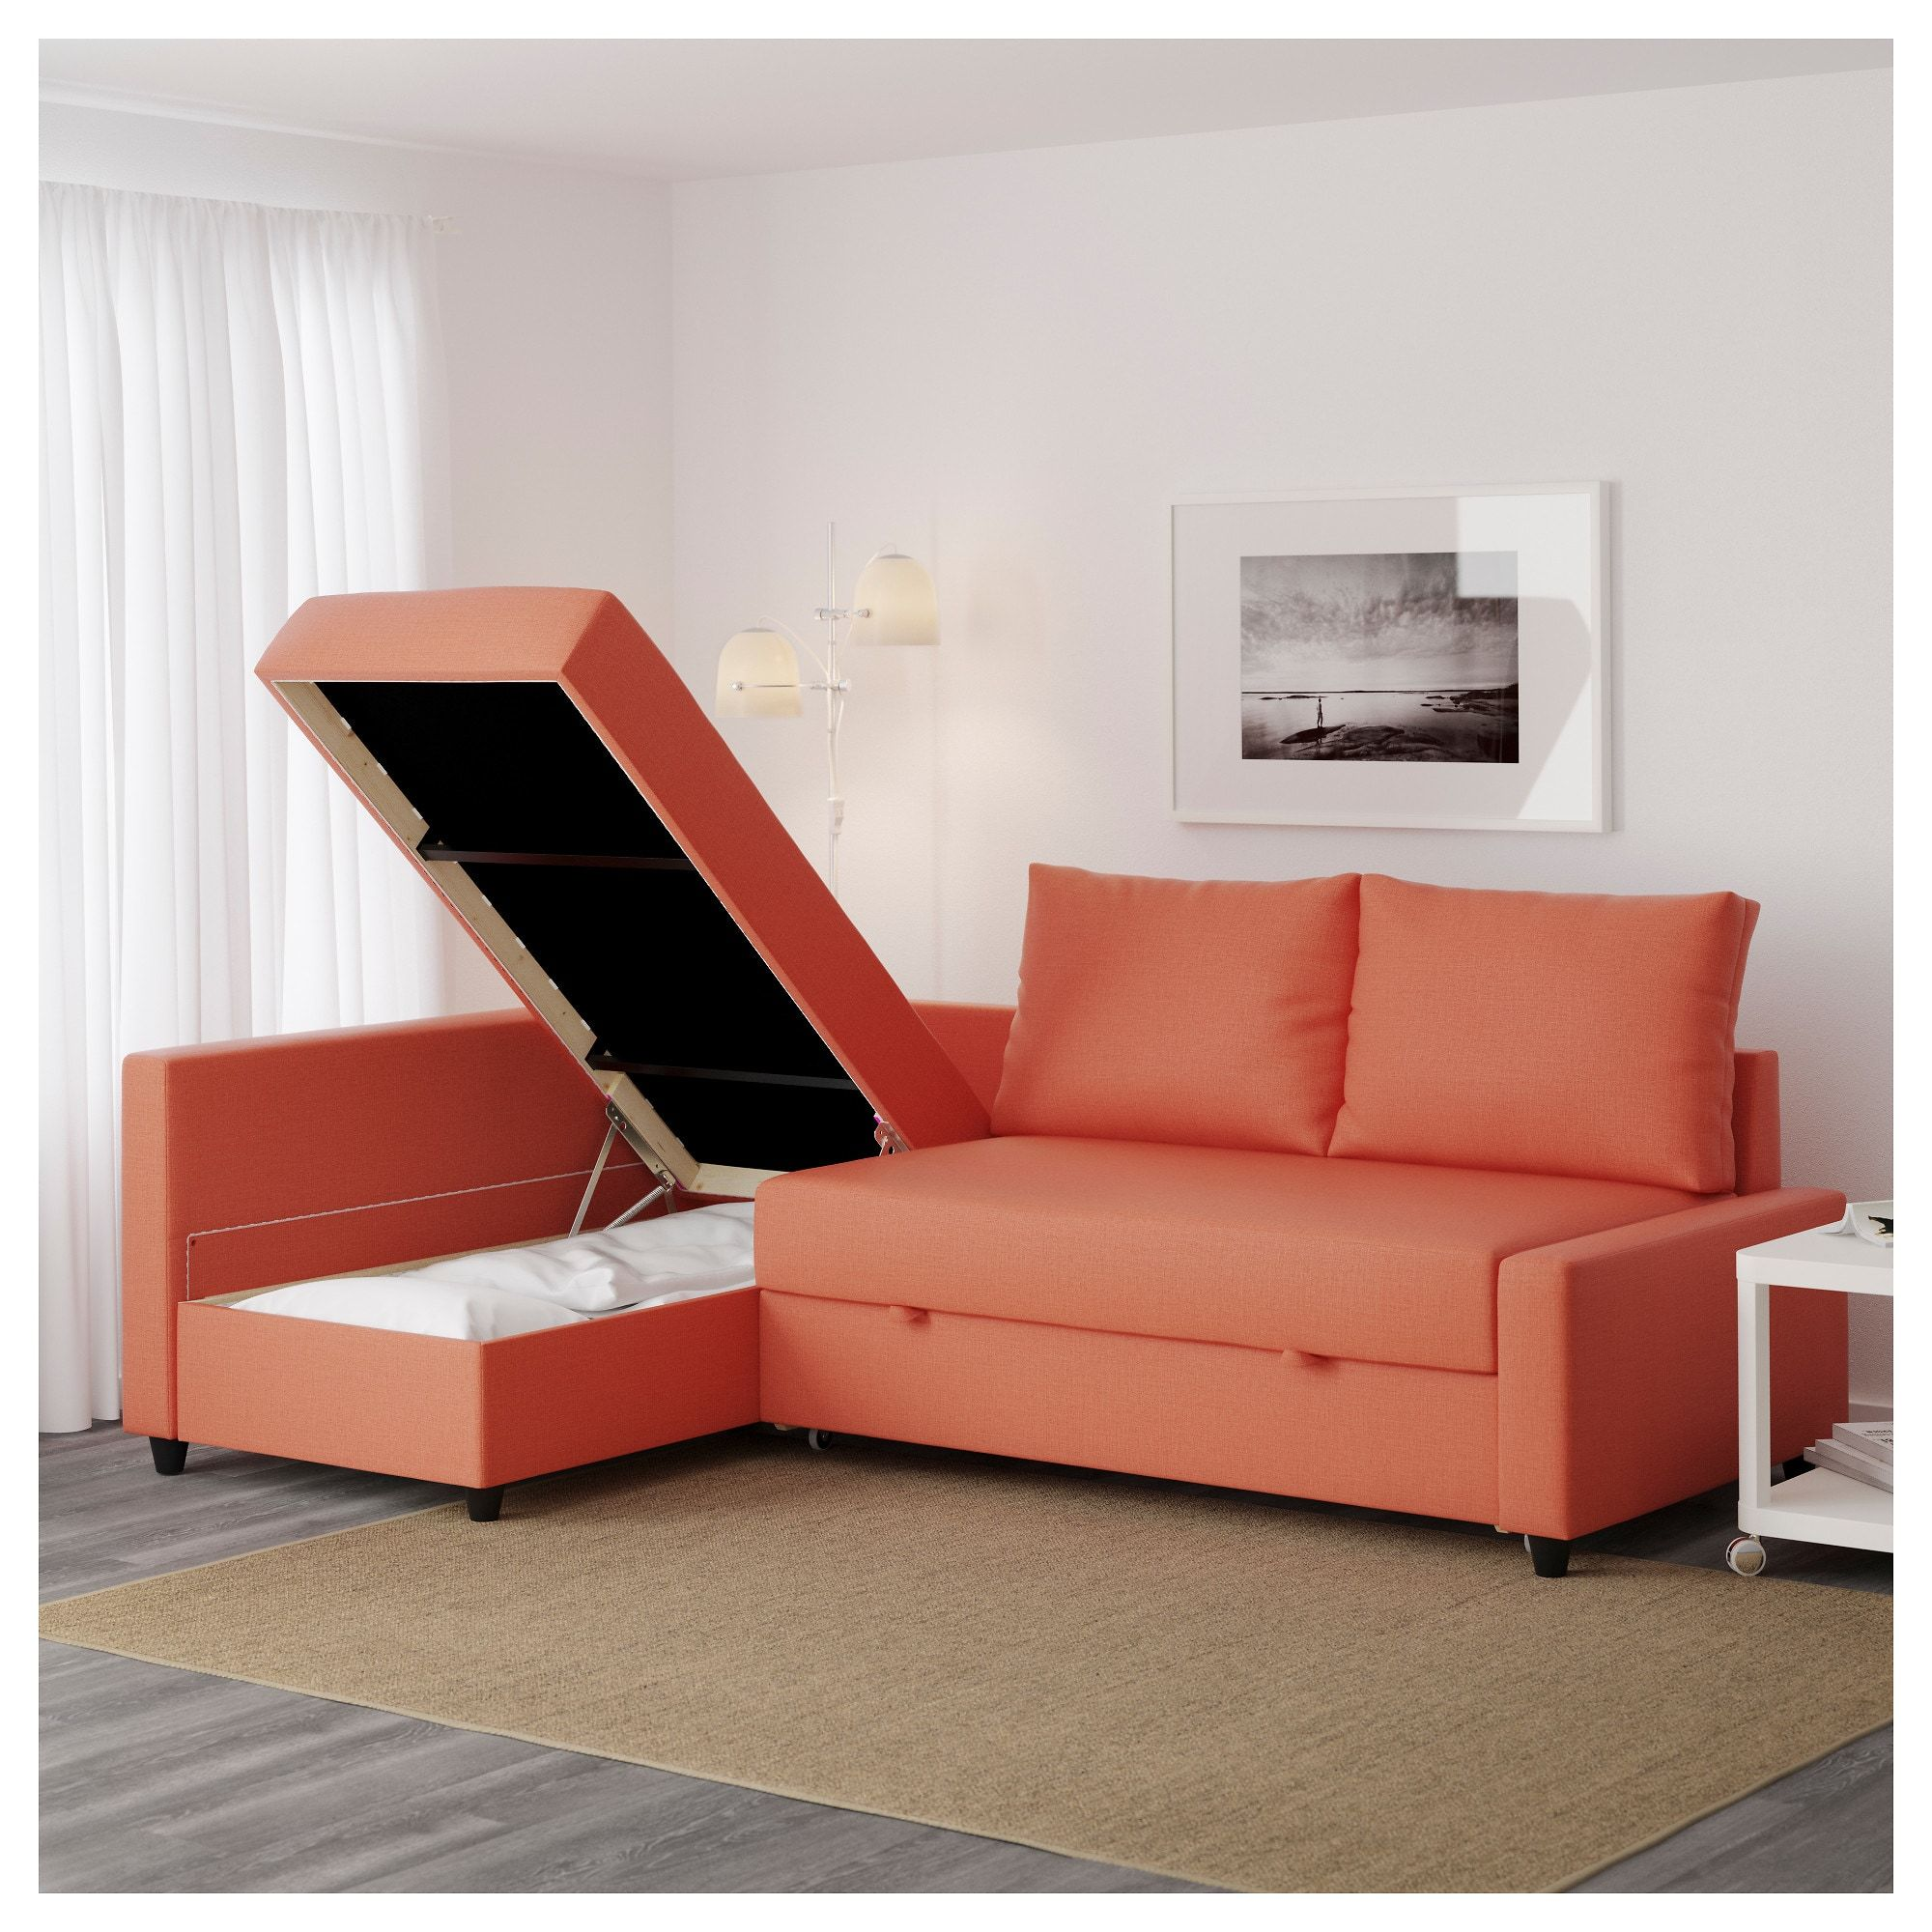 Canape Ikea Backabro 3 Places Friheten Sleeper Sectional 3 Seat W Storage Skiftebo Dark Orange